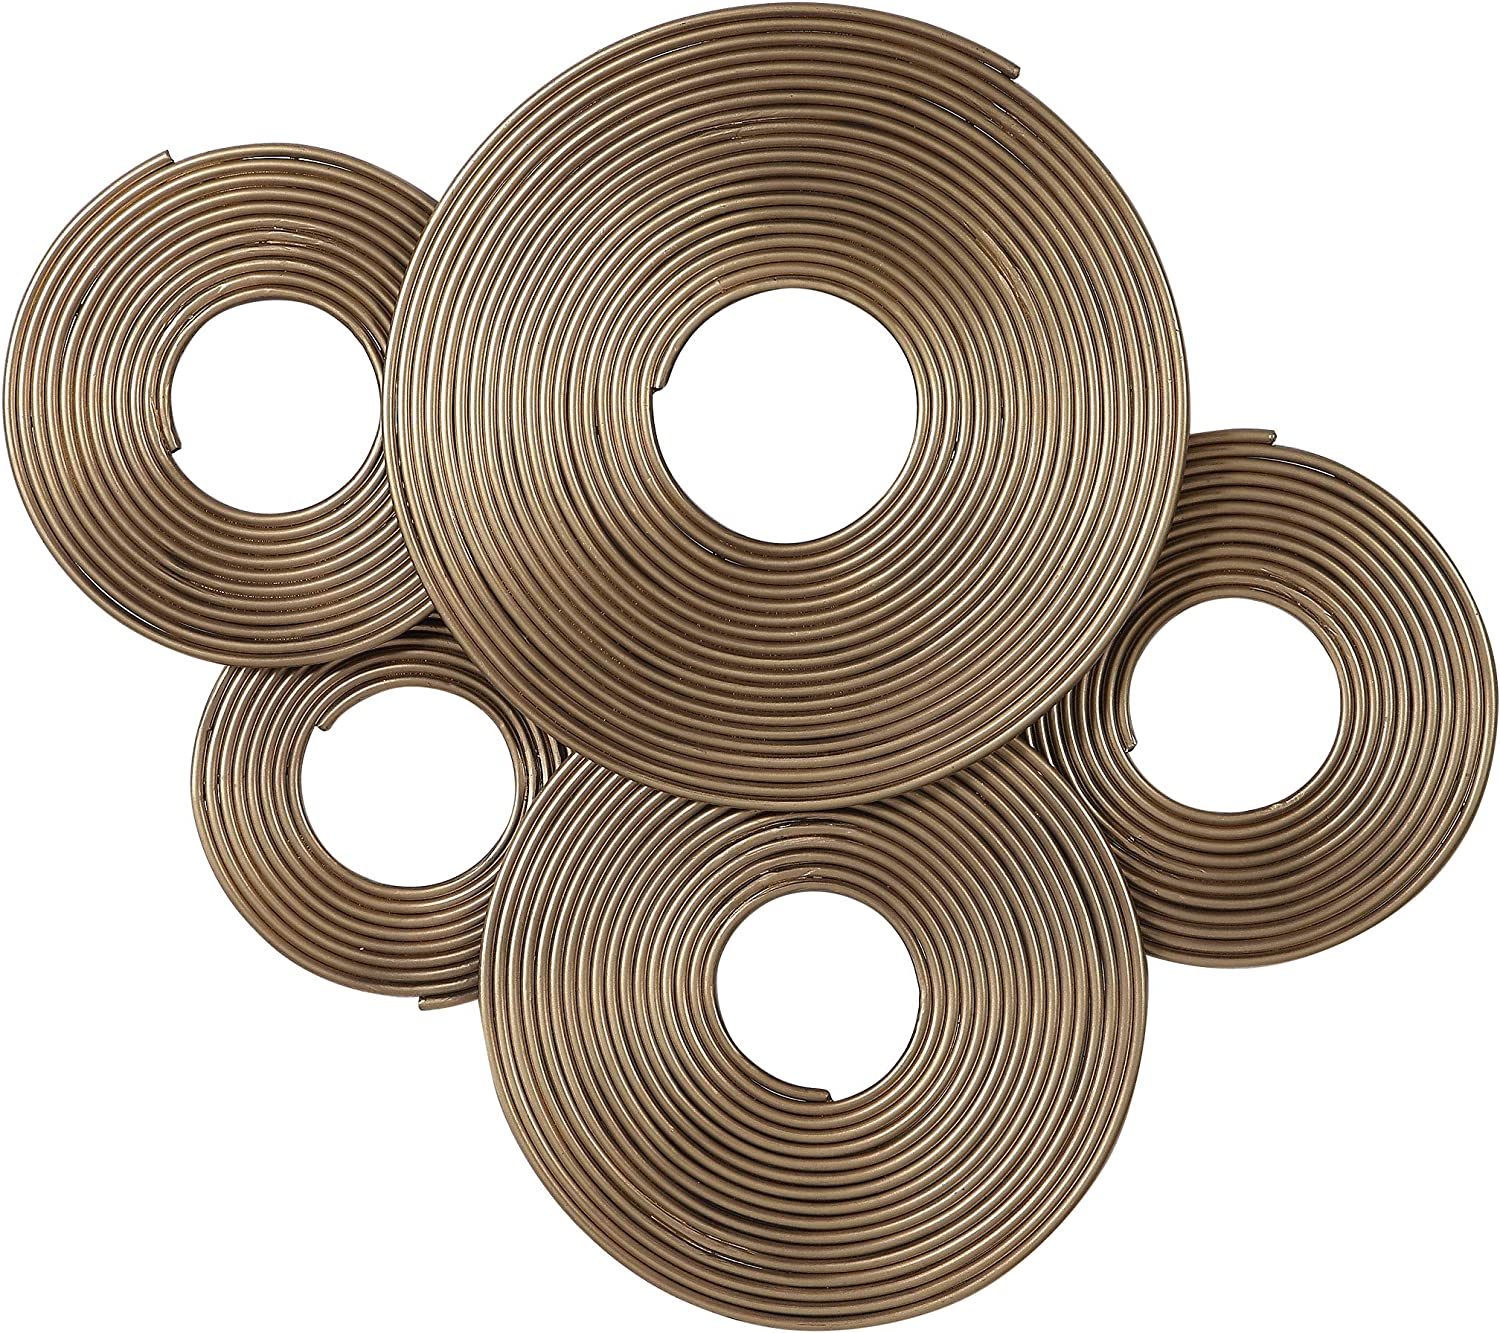 MY SWANKY HOME Modern Gold Rings Sculpture MidCentury Beauty products Wall Dedication Metal